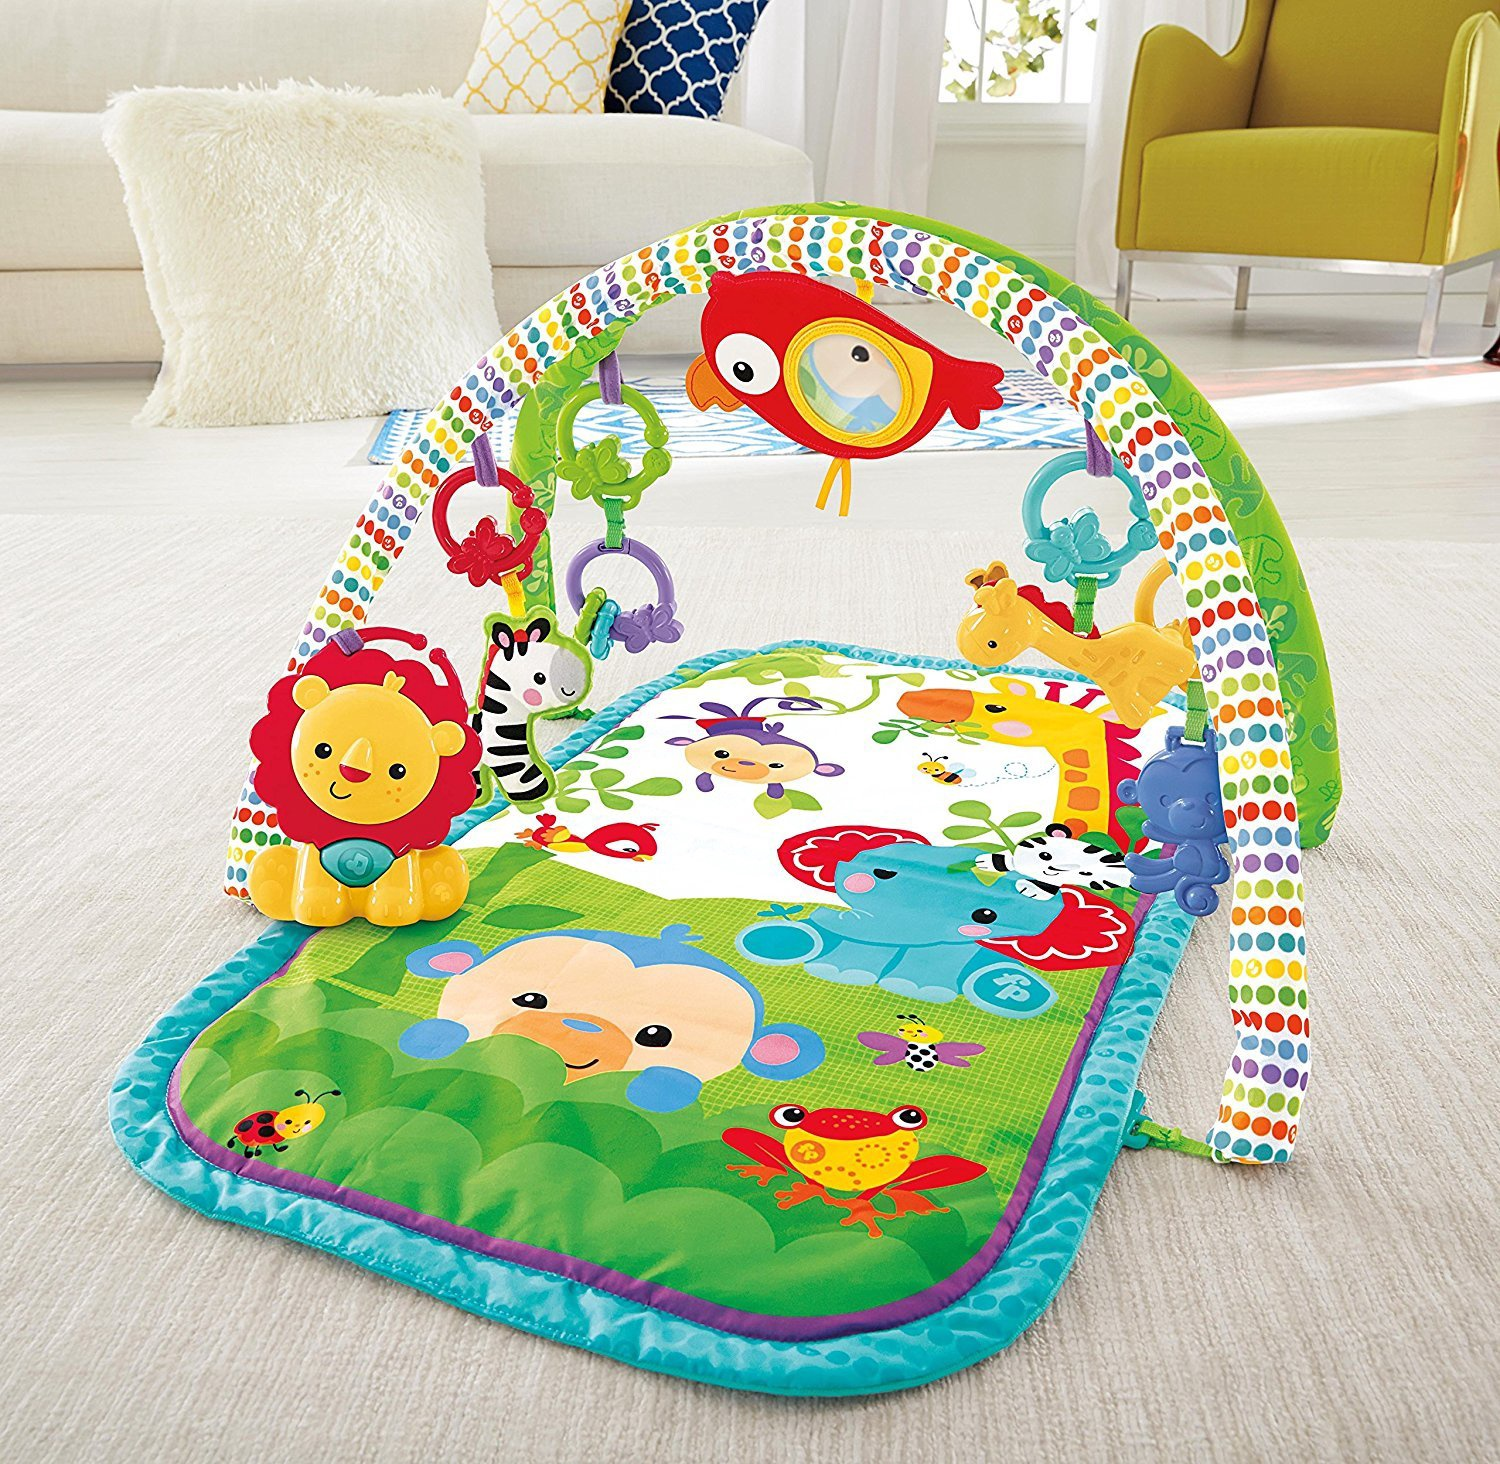 RAINFOREST 3 IN 1 MUSICAL ACTIVITY GYM